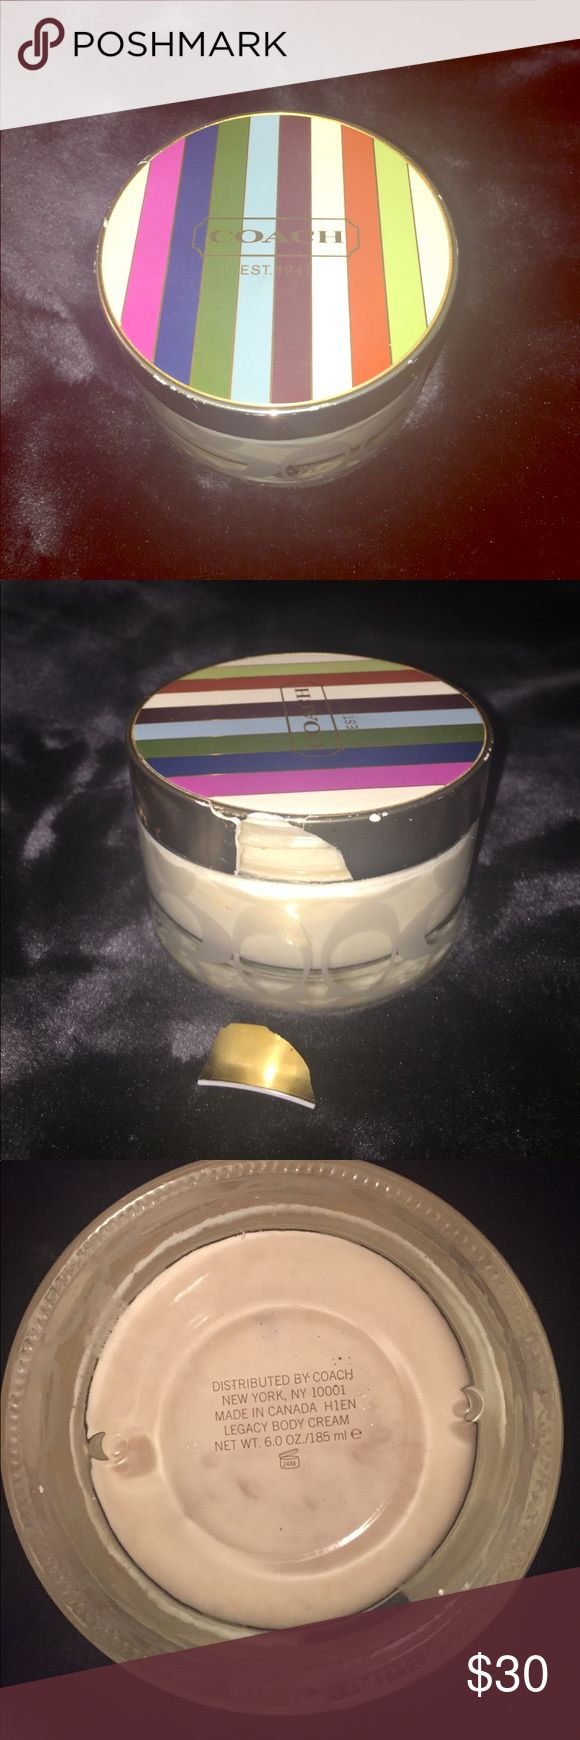 Coach Legacy 6oz jar of lotion huge new jar of legacy lotion, the jar did fall and the lid cracked, I am open to offers Coach Makeup